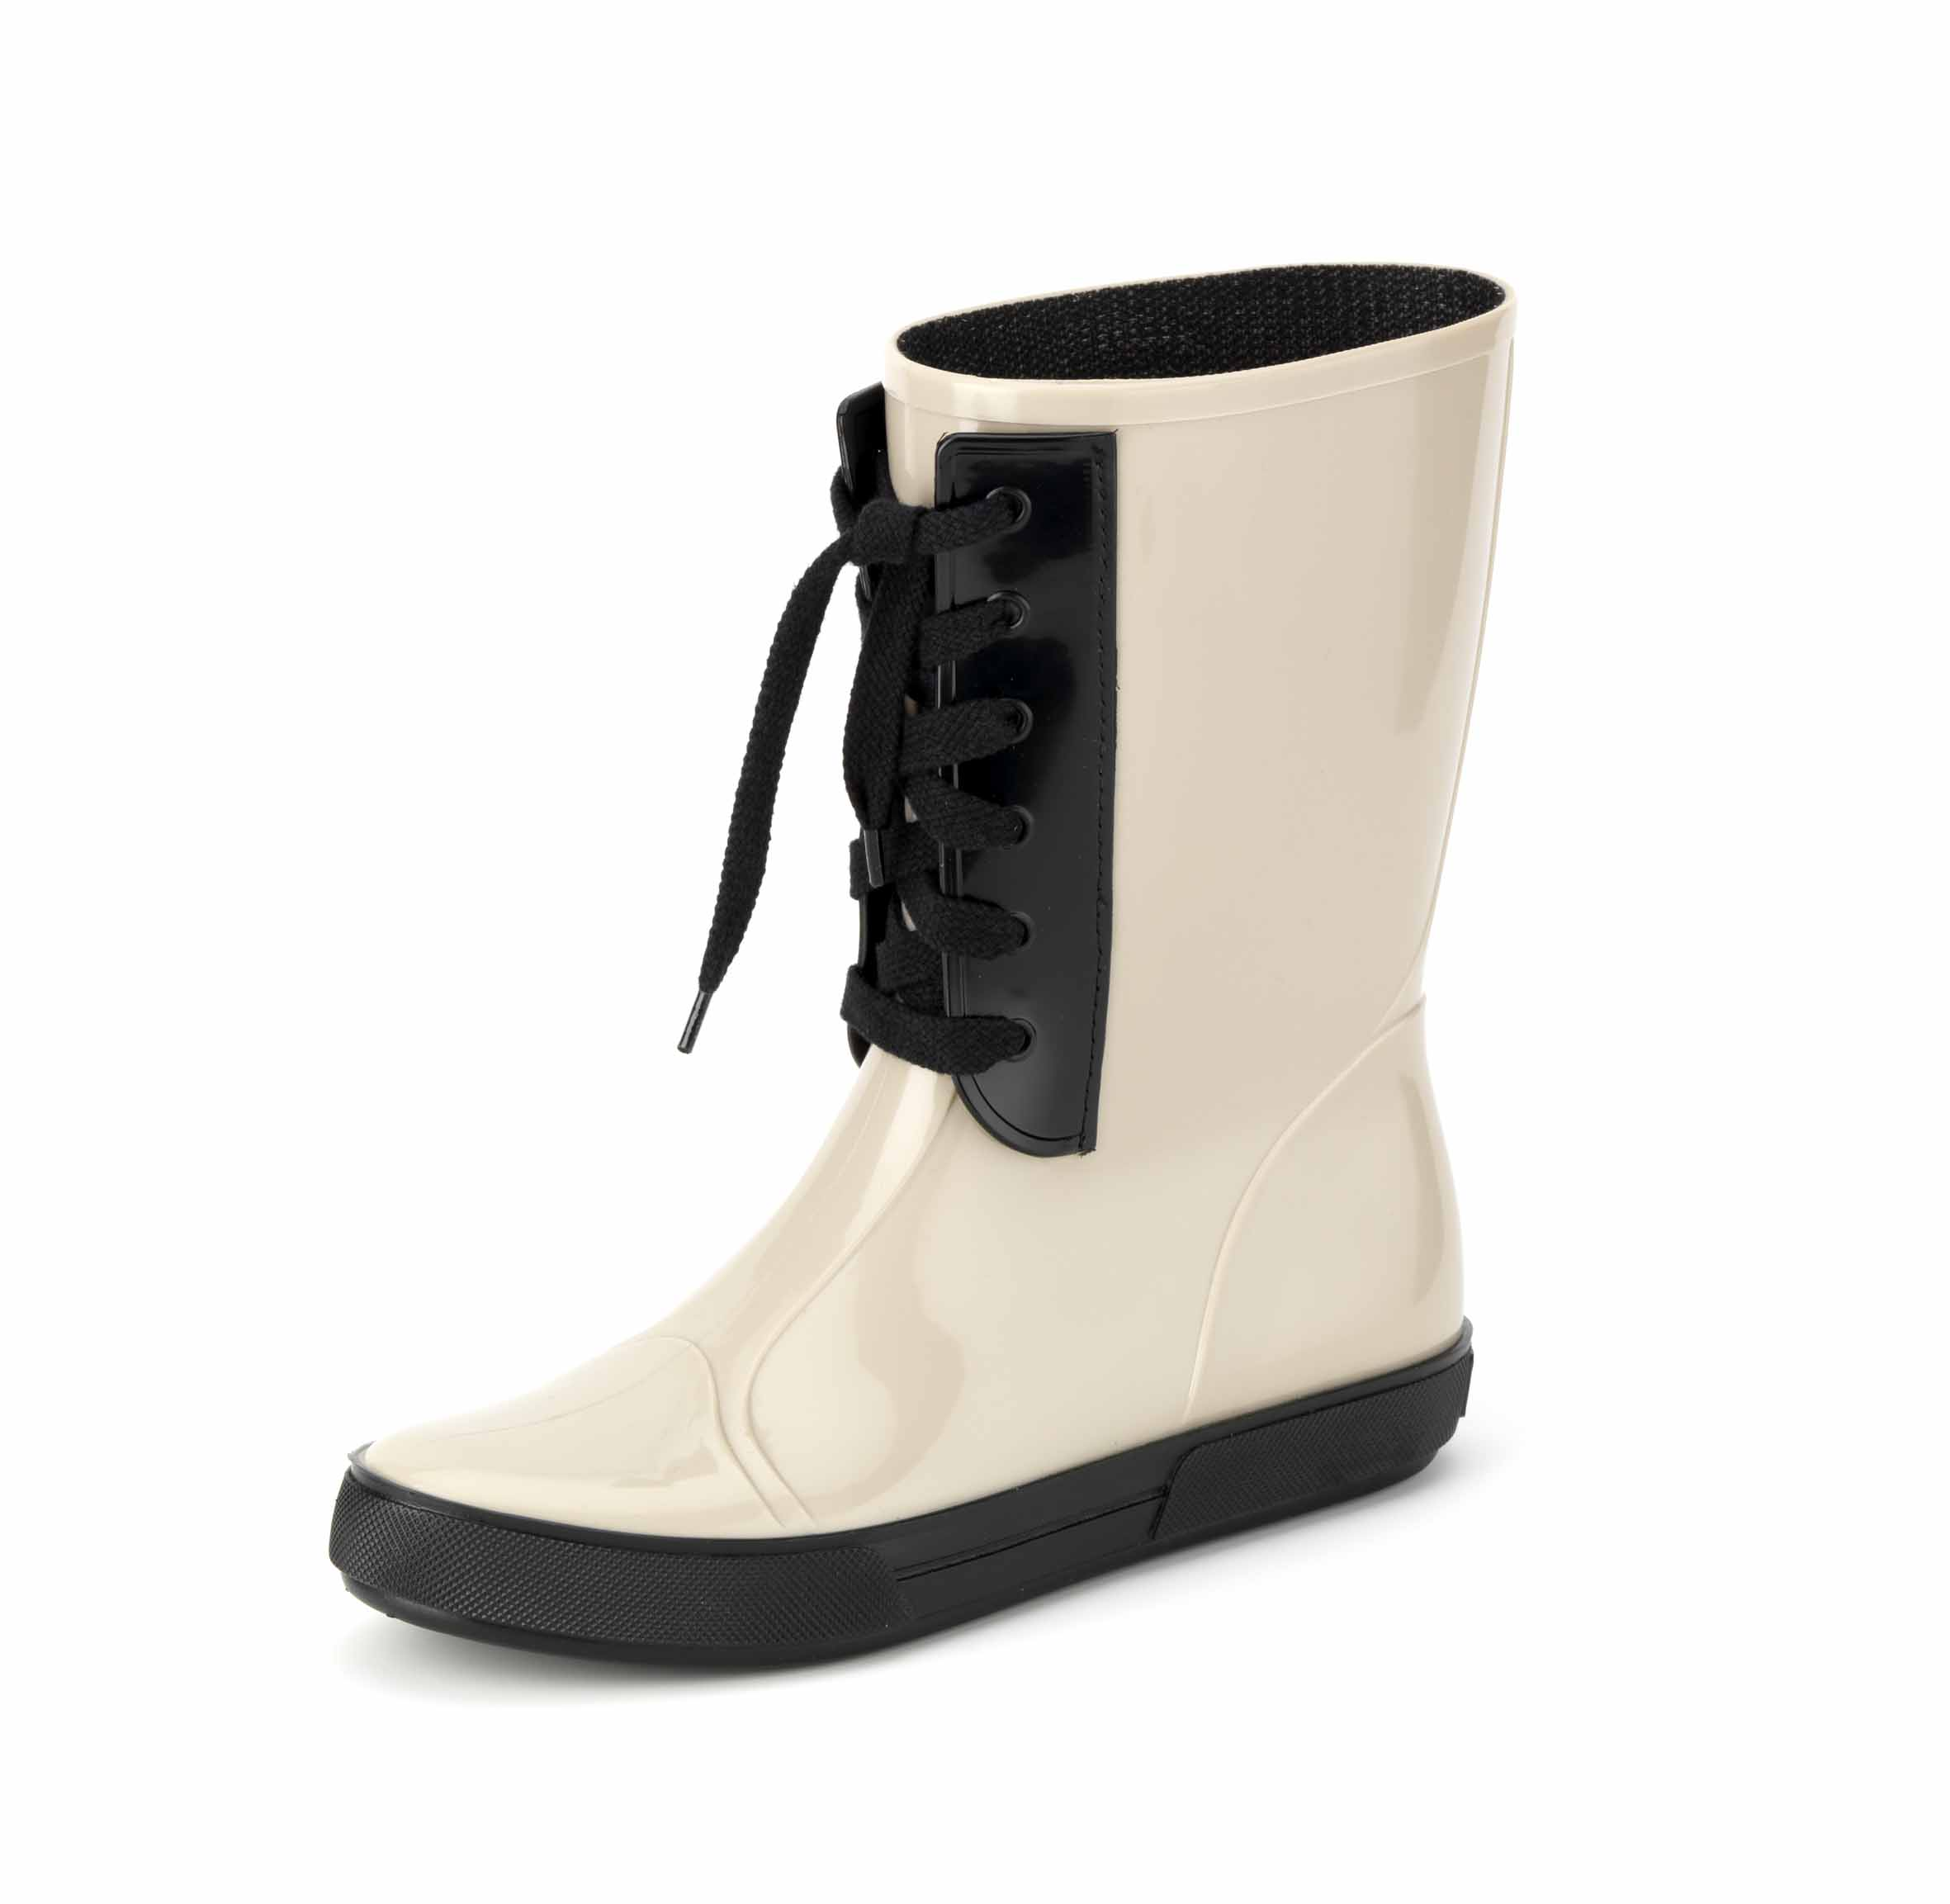 Pvc front lace-effect insert matching with outsole colour and with leather tie, stitched on a biker boot for women